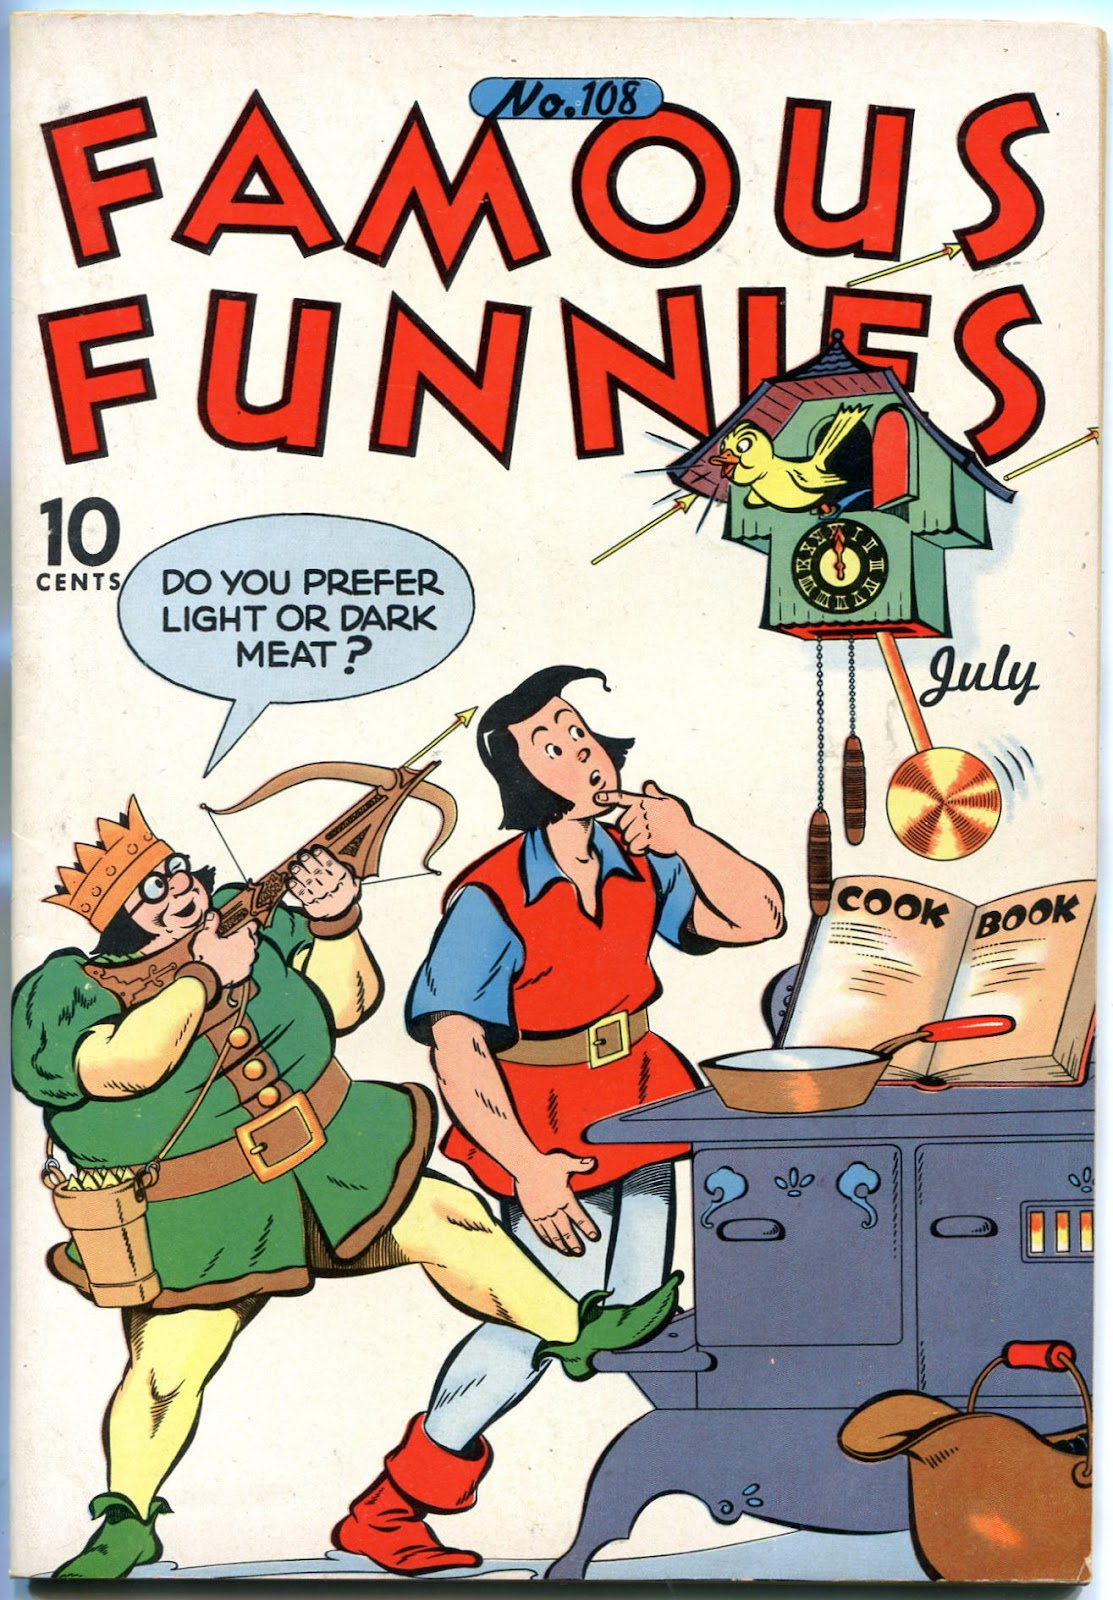 Read online Famous Funnies comic -  Issue #108 - 1